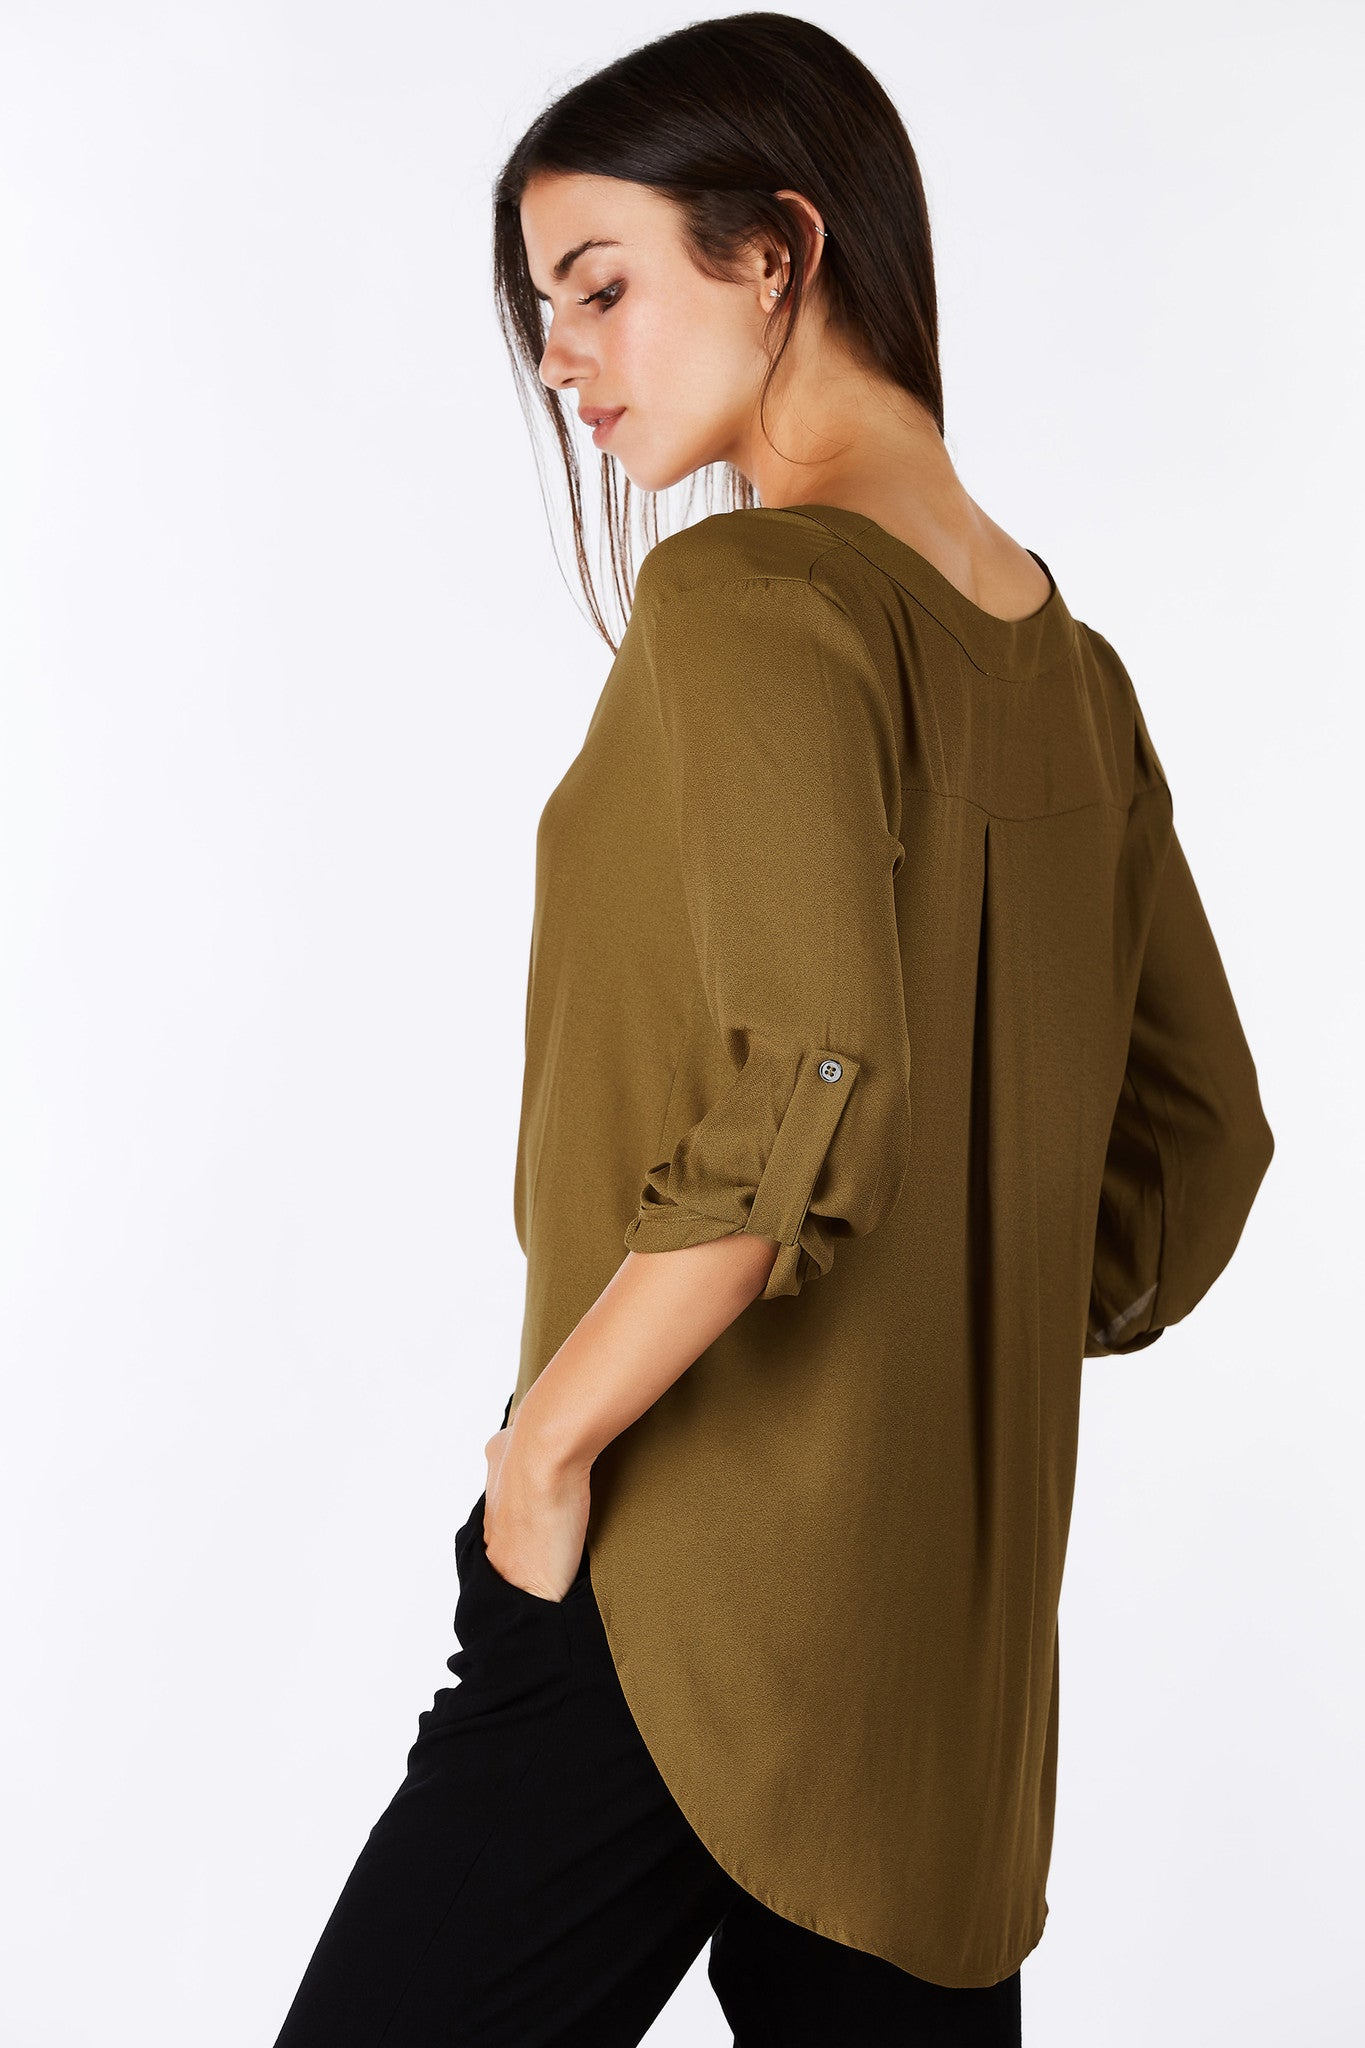 "An airy chiffon blouse is a must have for the Summer. This classic V-neck blouse features 3/4"" length sleeves with a relaxed fit. Perfect to layer a bralette underneath for a chic look while staying cool all day."